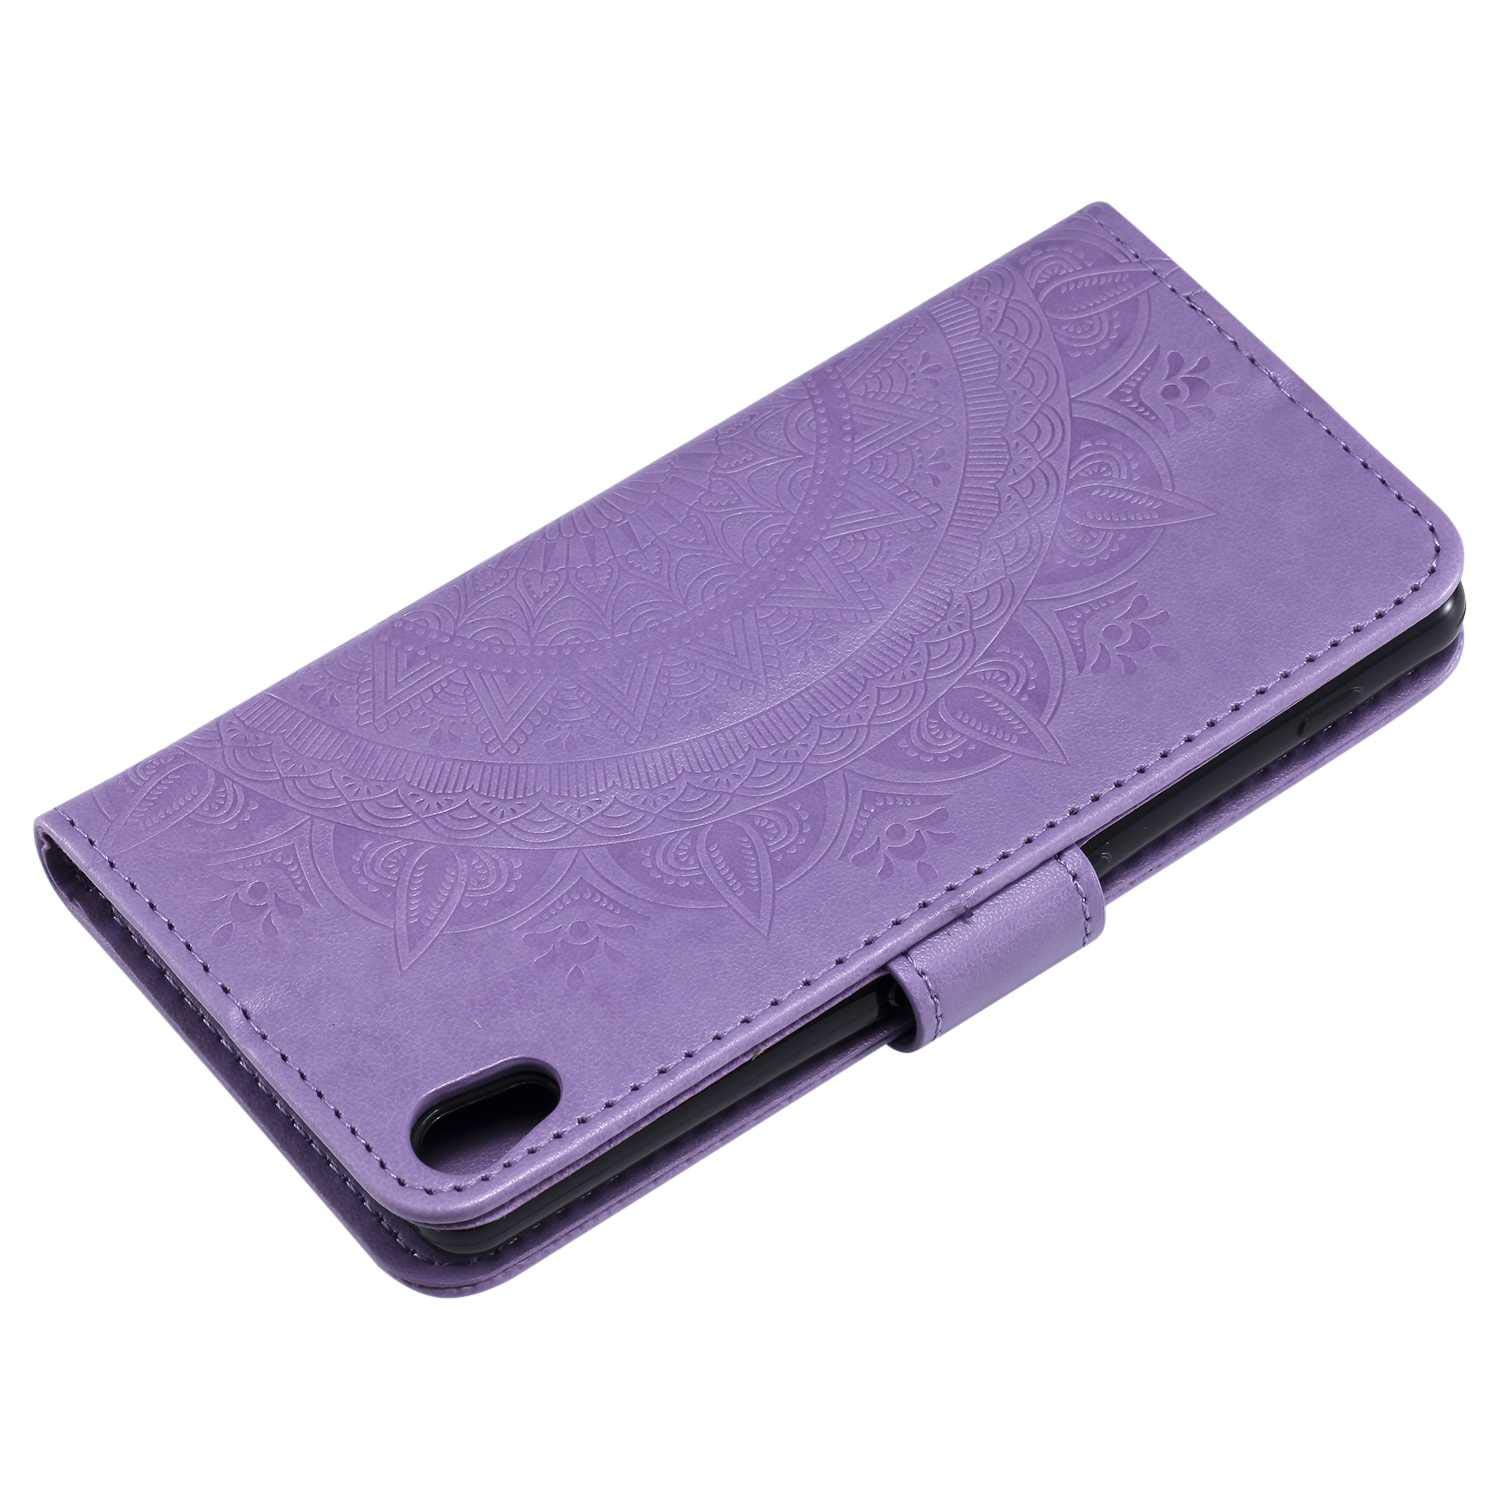 Card Slots Gray Kickstand Function Sony Xperia XA1 Case Flip Notebook Cover for Sony Xperia XA1 The Grafu Leather Case Premium Wallet Case with